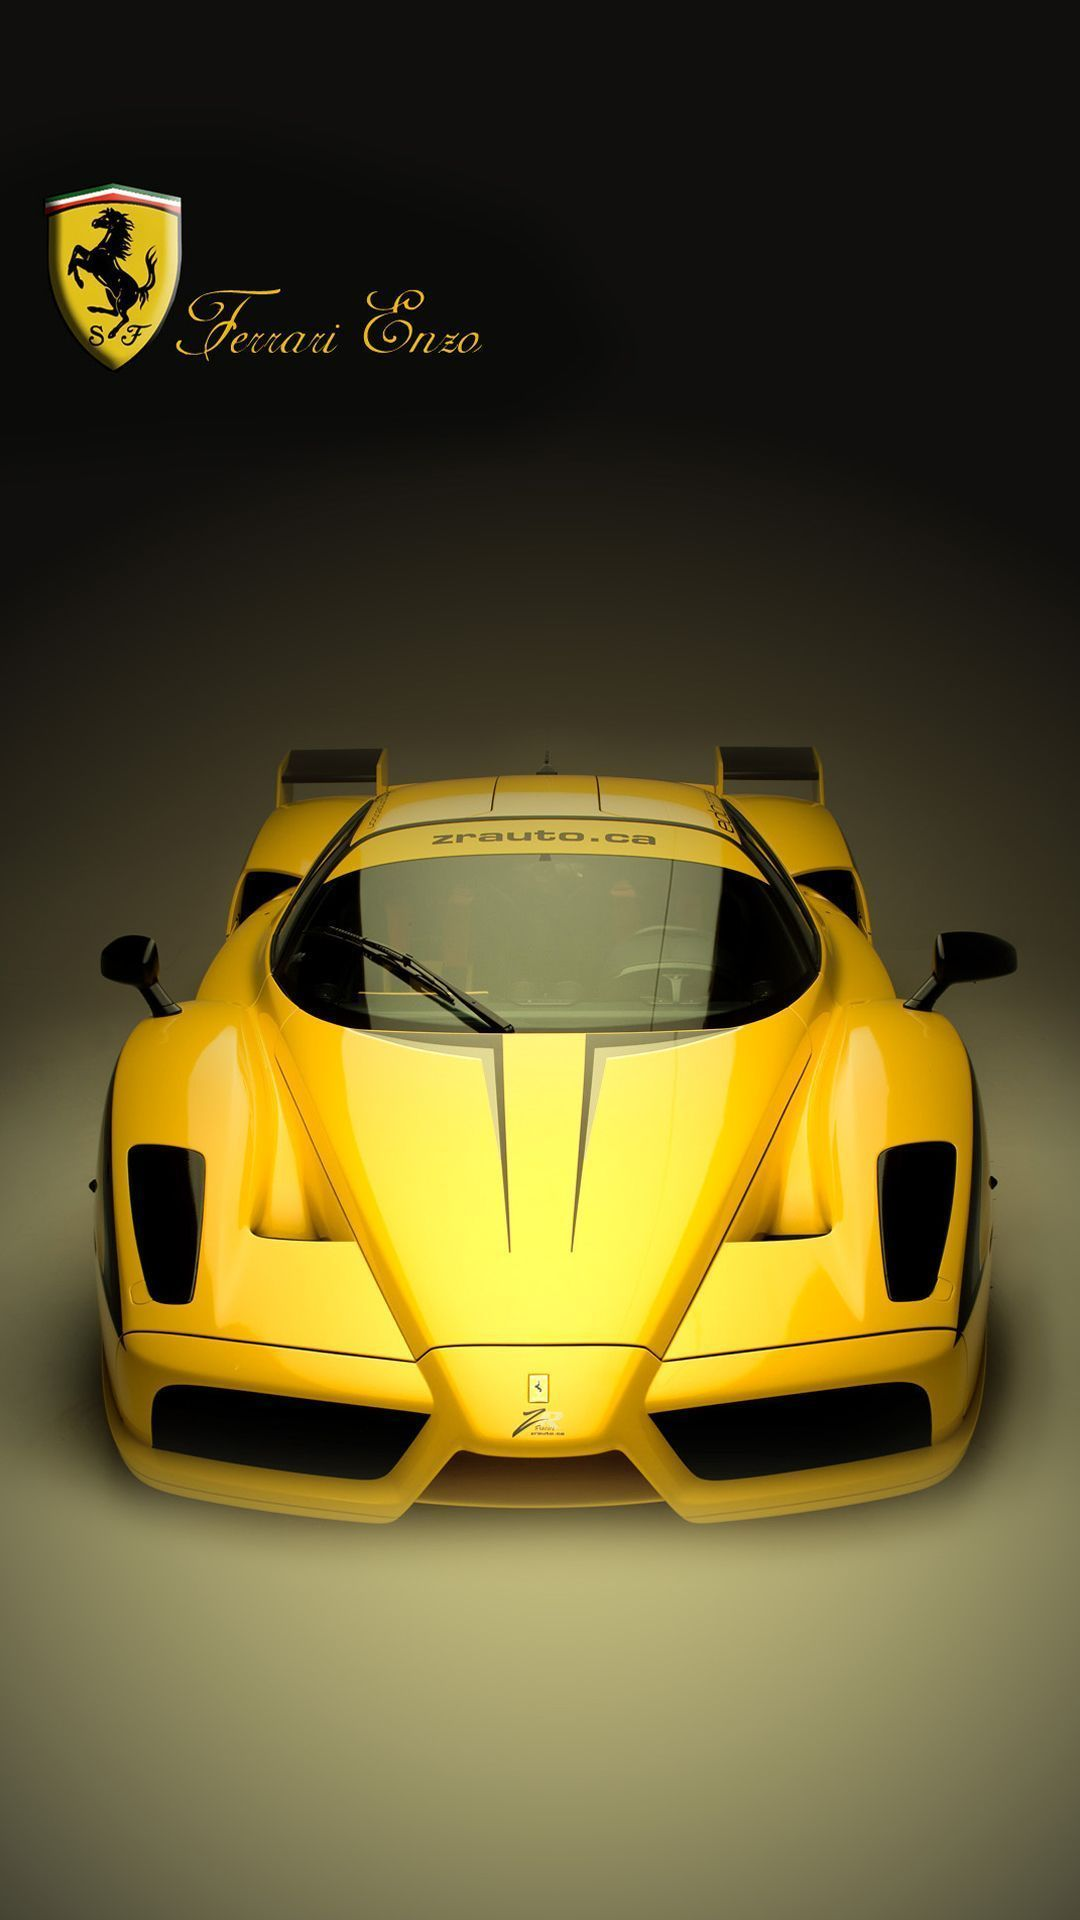 Exotic Sport Car Wallpapers Top Free Exotic Sport Car Backgrounds